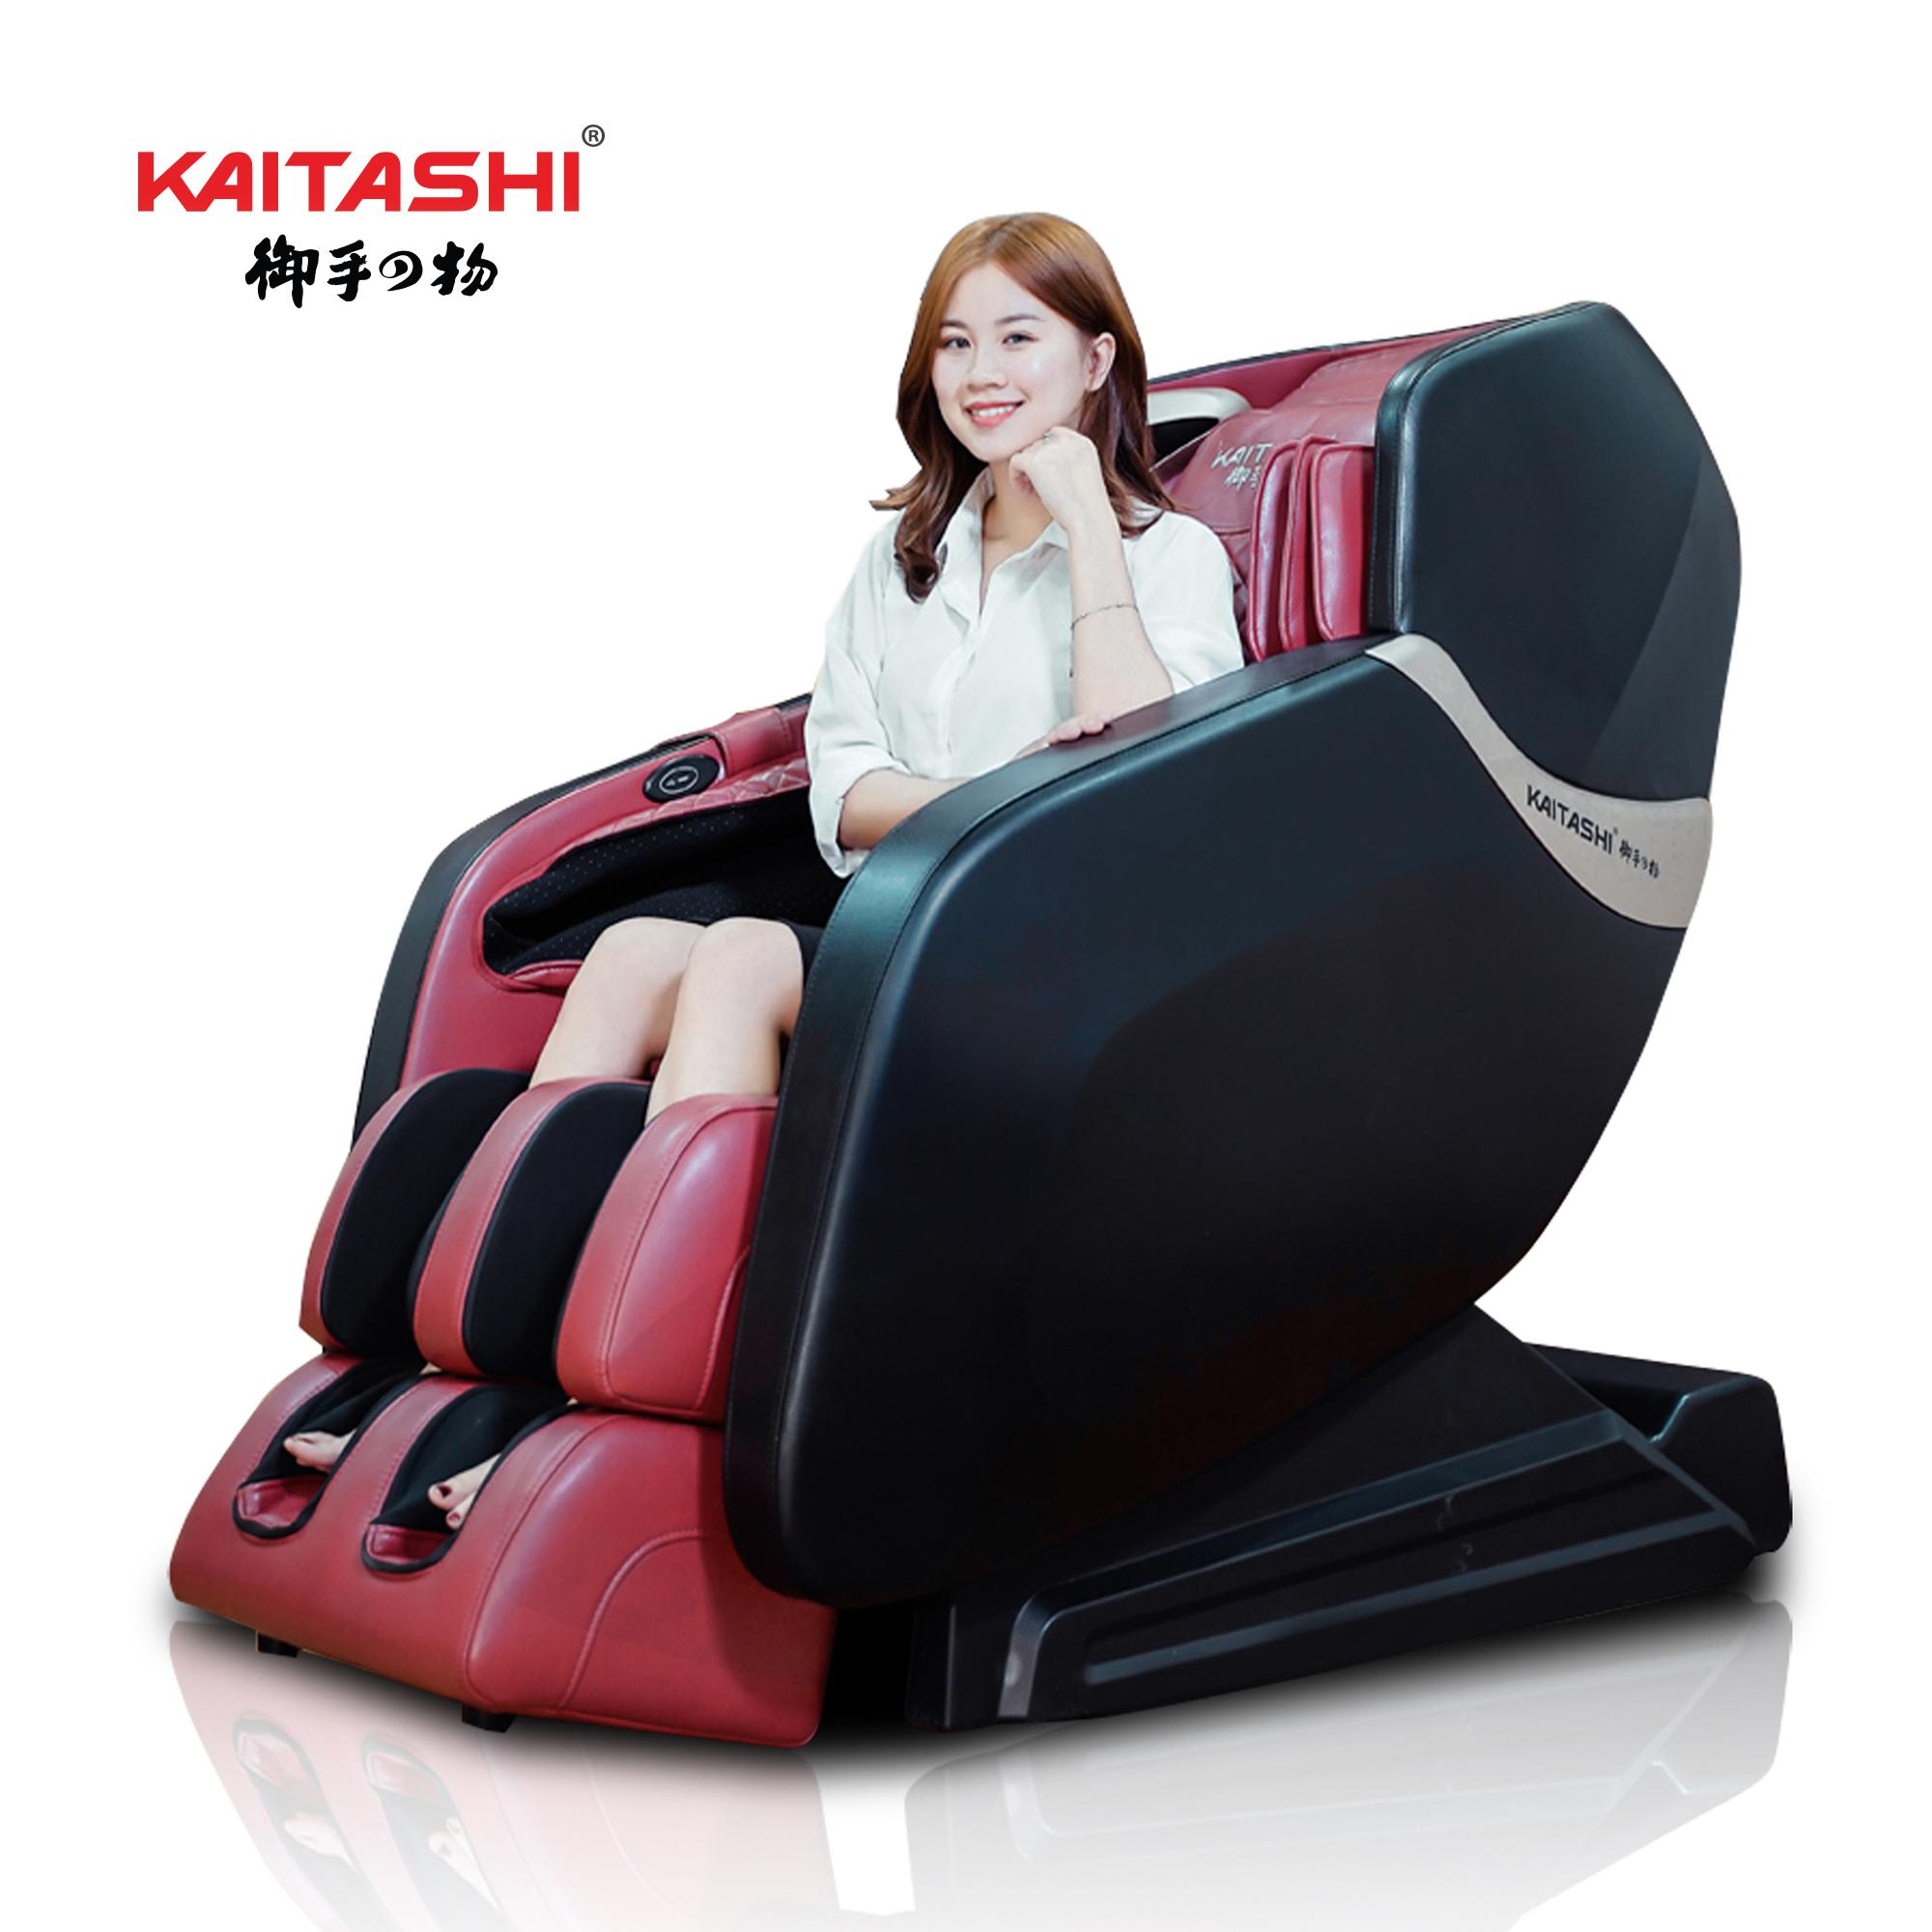 GHẾ MASSAGE KAITASHI KS-600